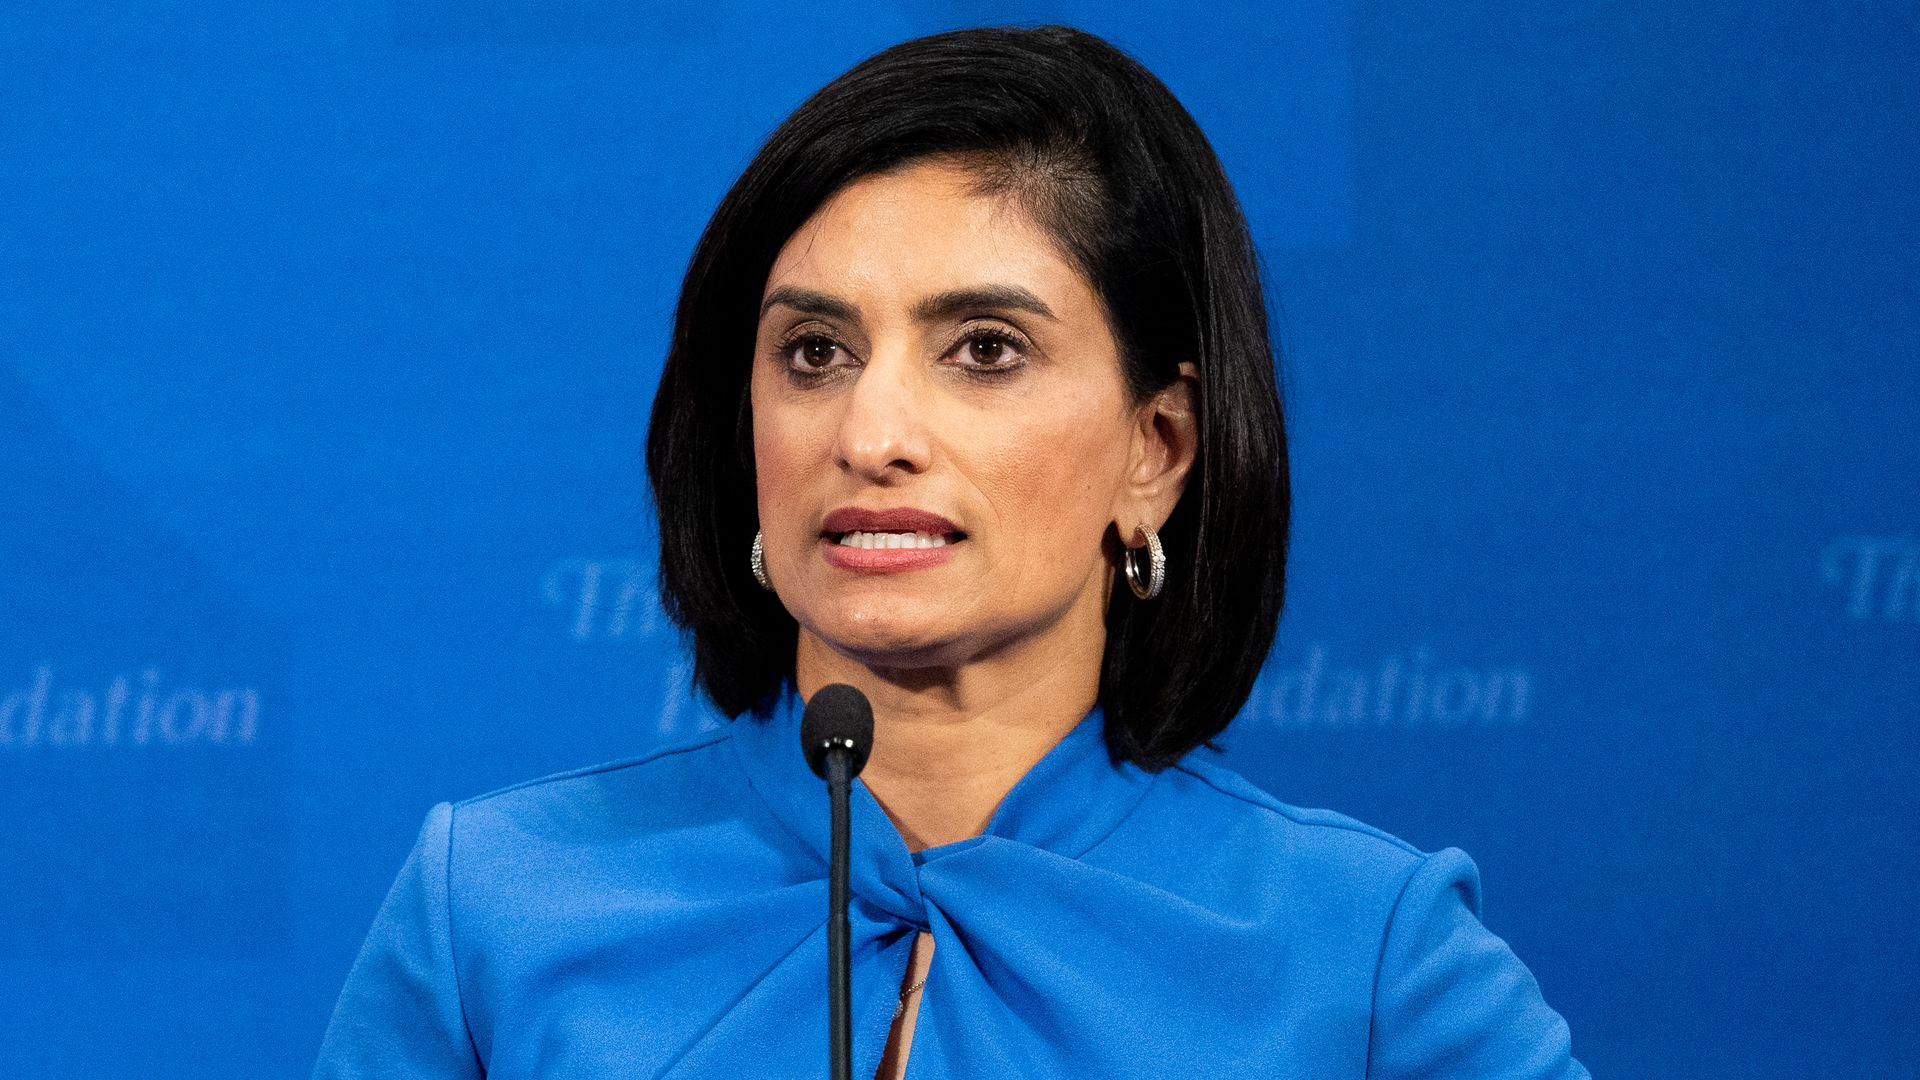 Seema Verma, Administrator, Centers for Medicare & Medicaid Services, U.S. Department of Health and Human Services